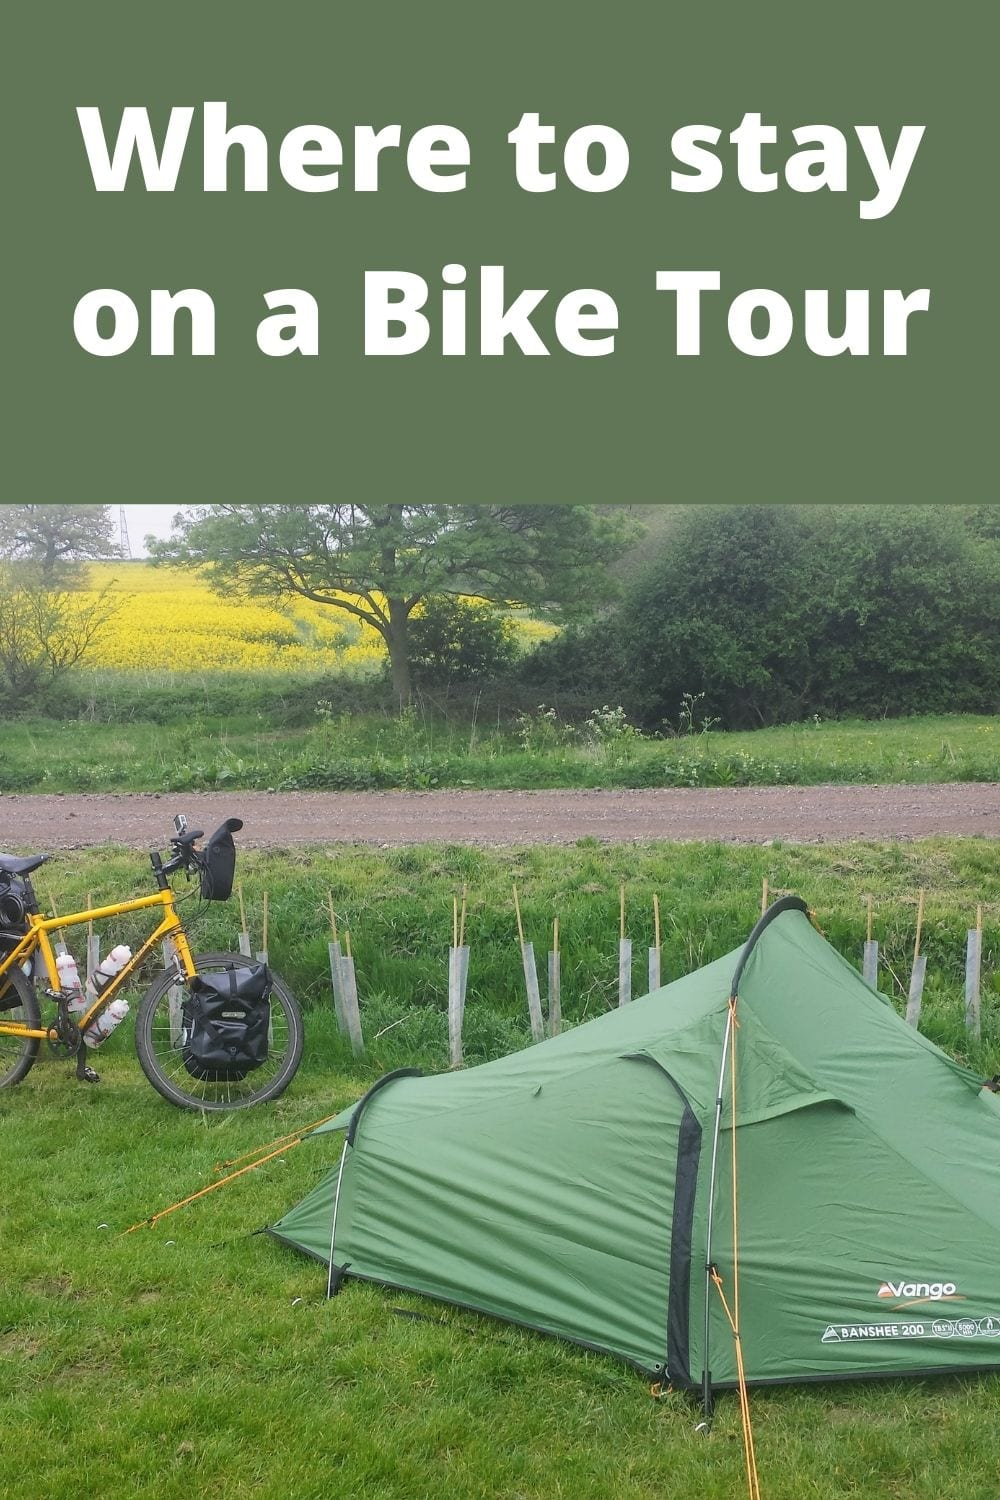 Where to stay when you go bicycle touring